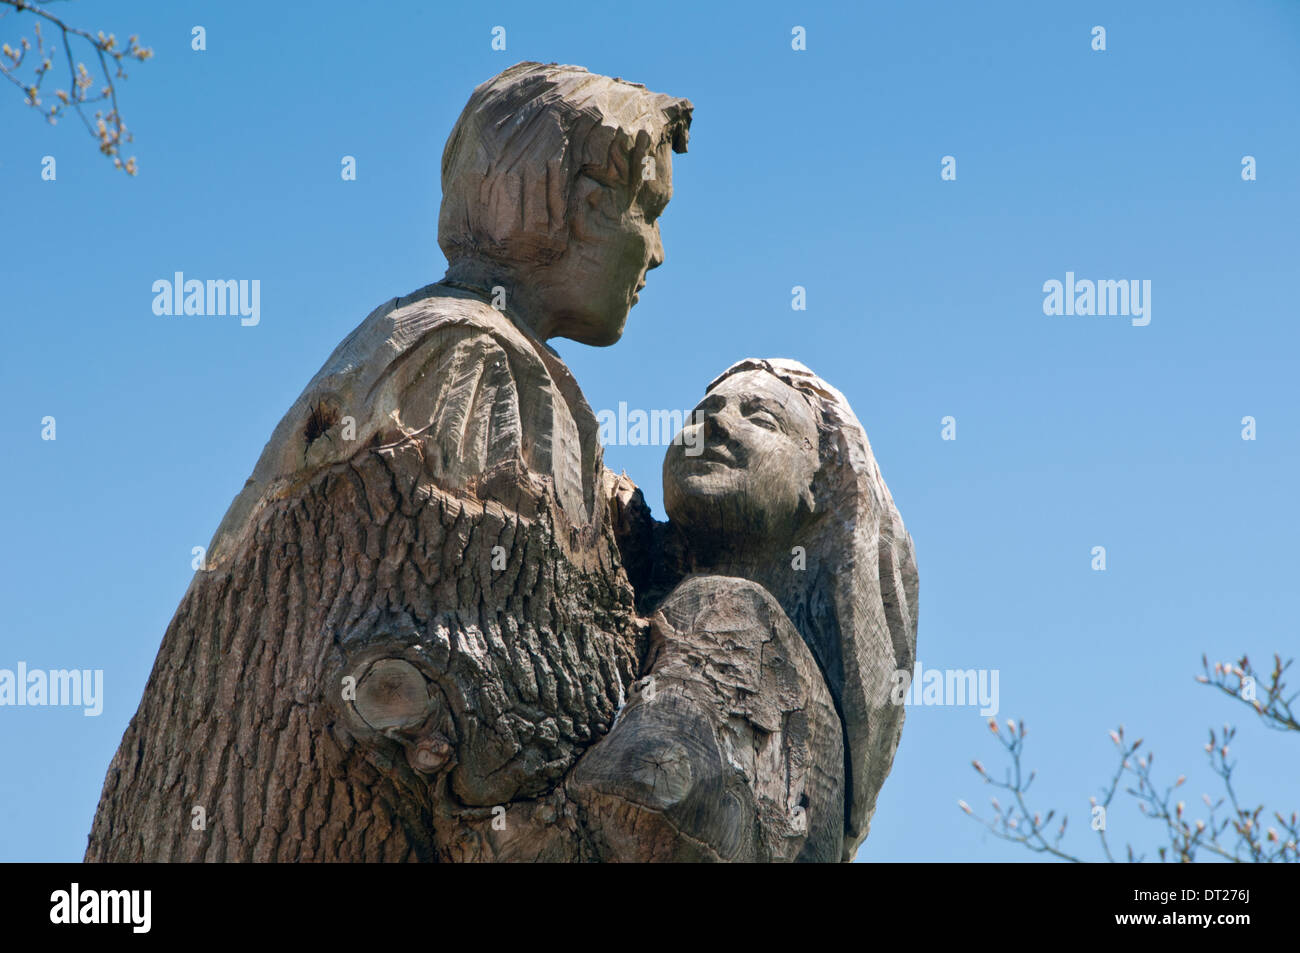 Romeo & Juliet Sculpture carved from a Tree Trunk - Stock Image